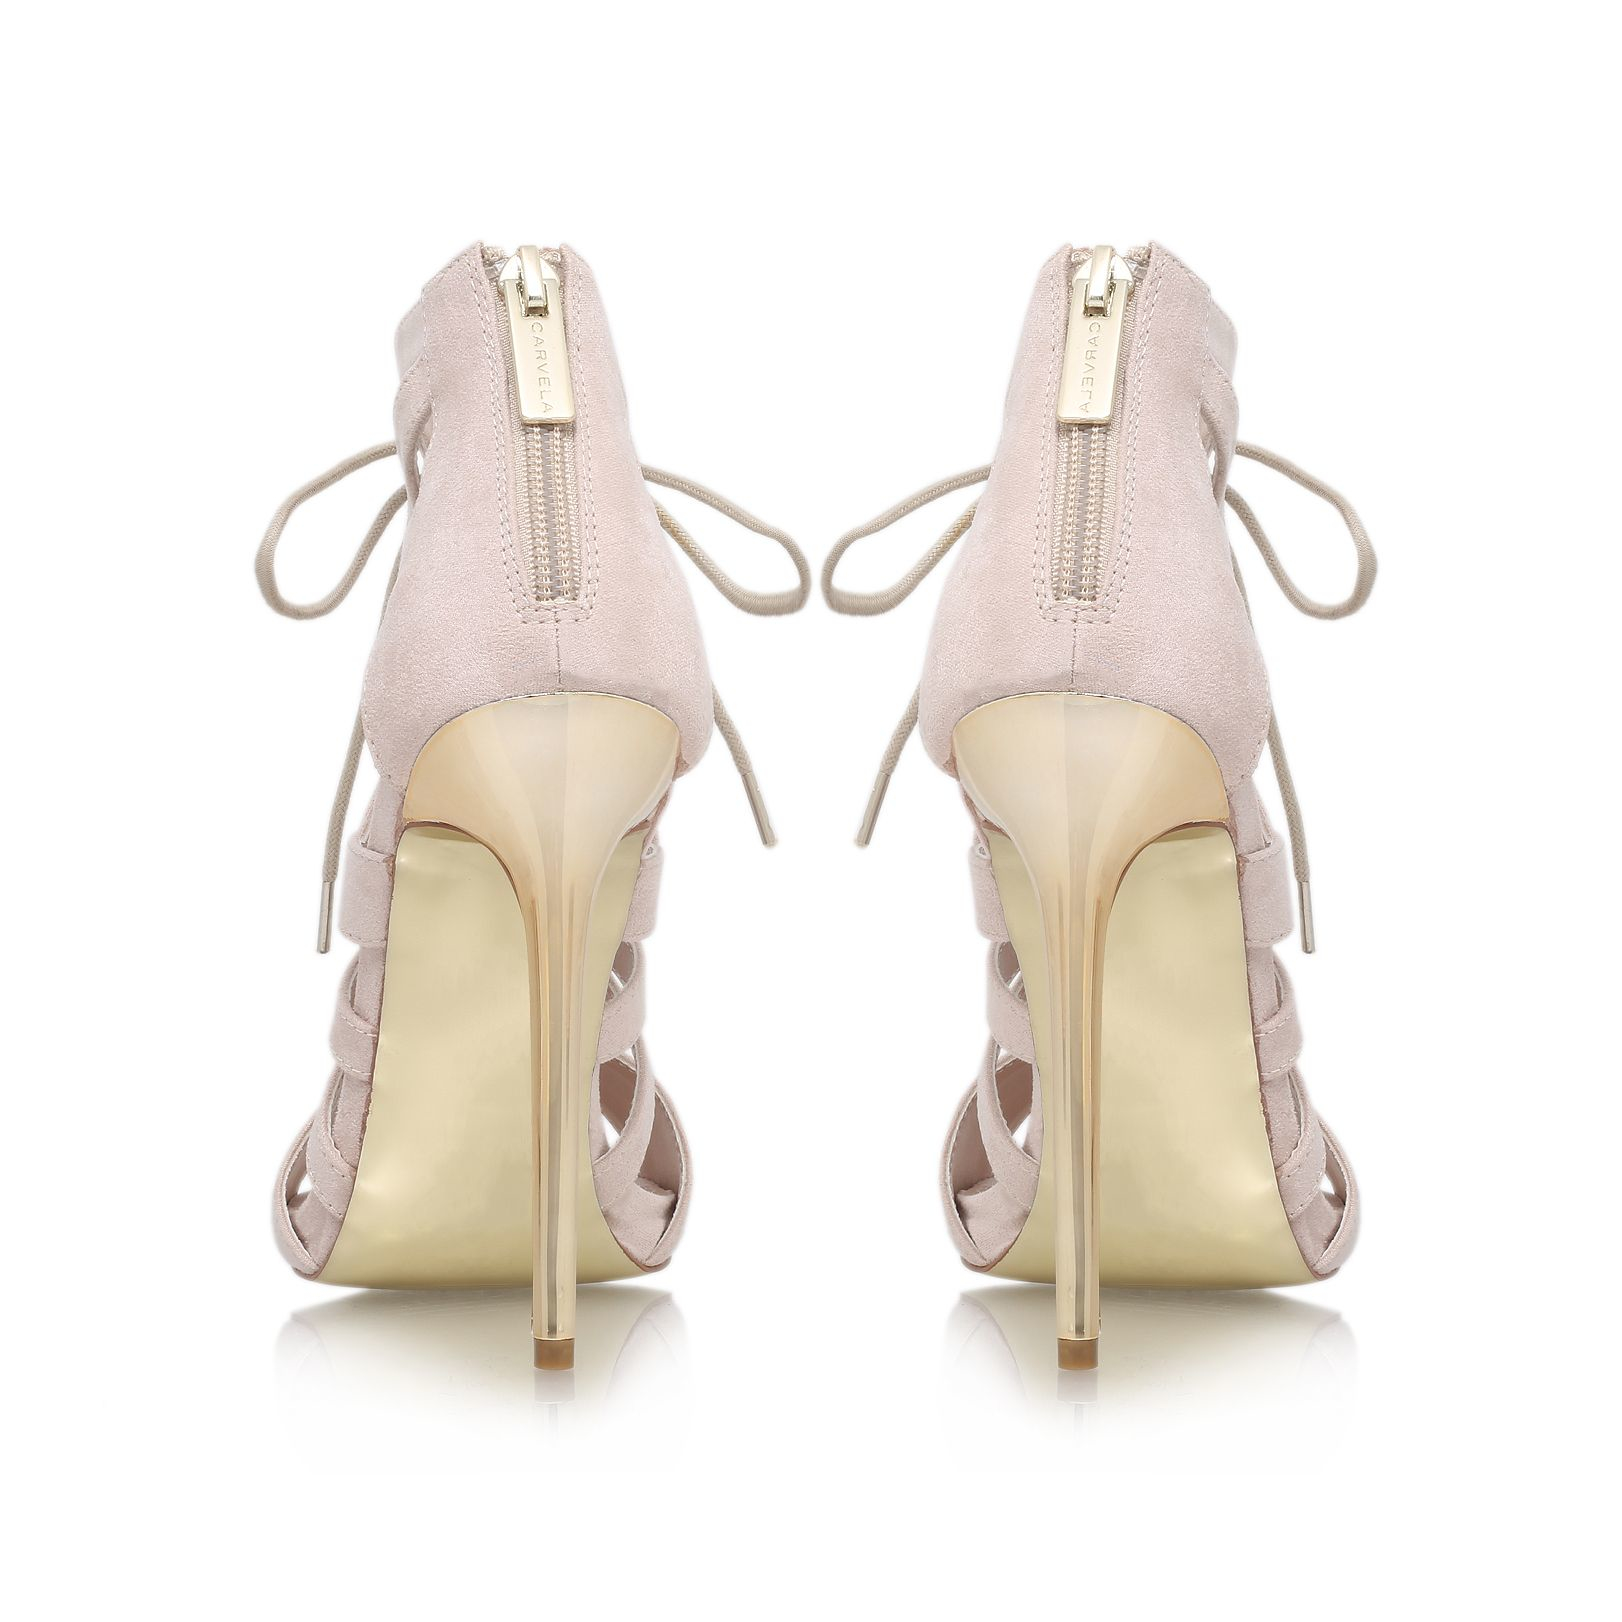 Carvela Kurt Geiger Synthetic Game High Heel Lace Up Shoe Boots in Nude (Natural)